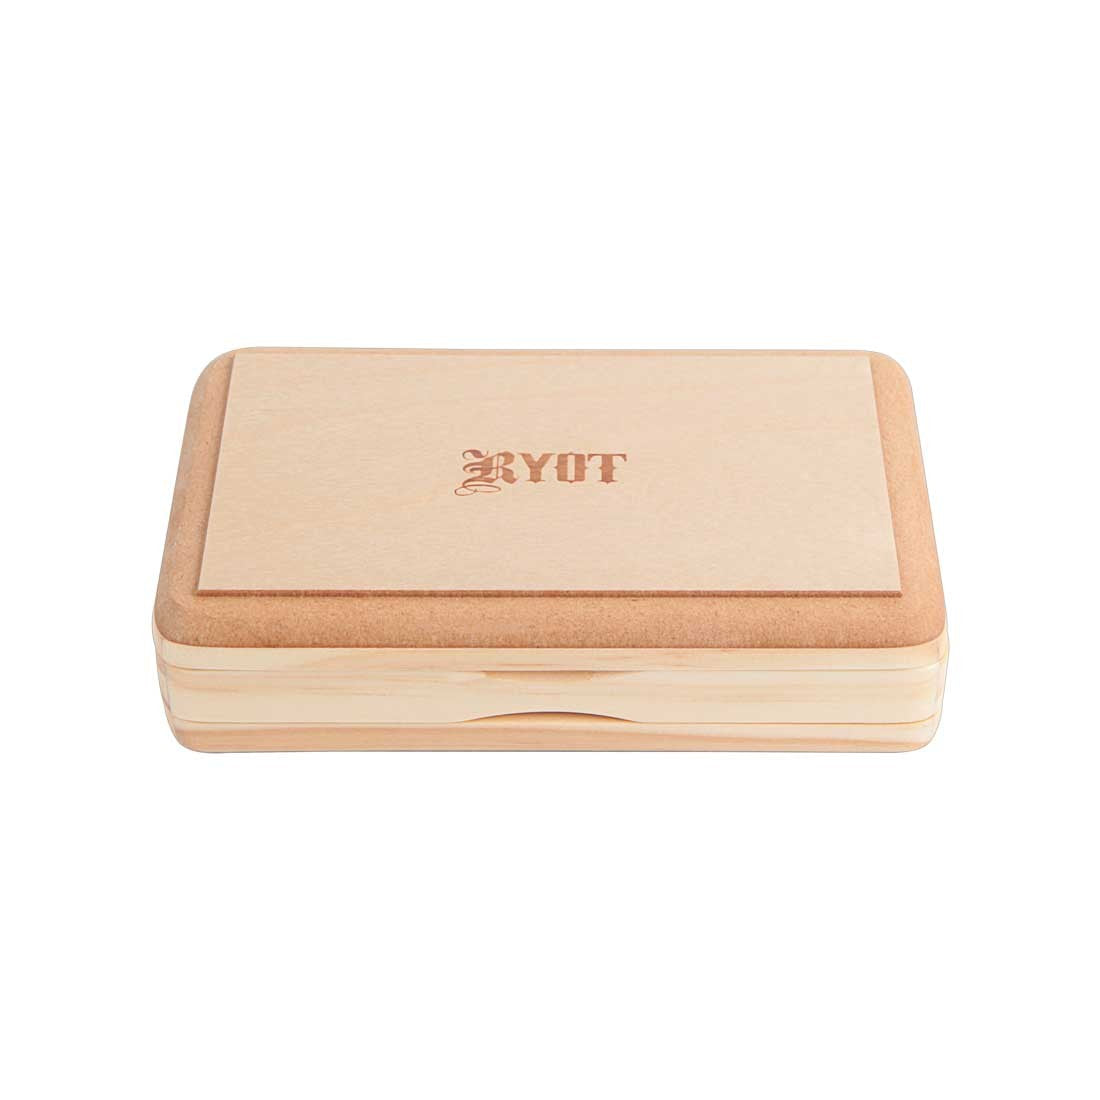 RYOT 3x5 Solid Top Sifter Box - Vapefiend UK